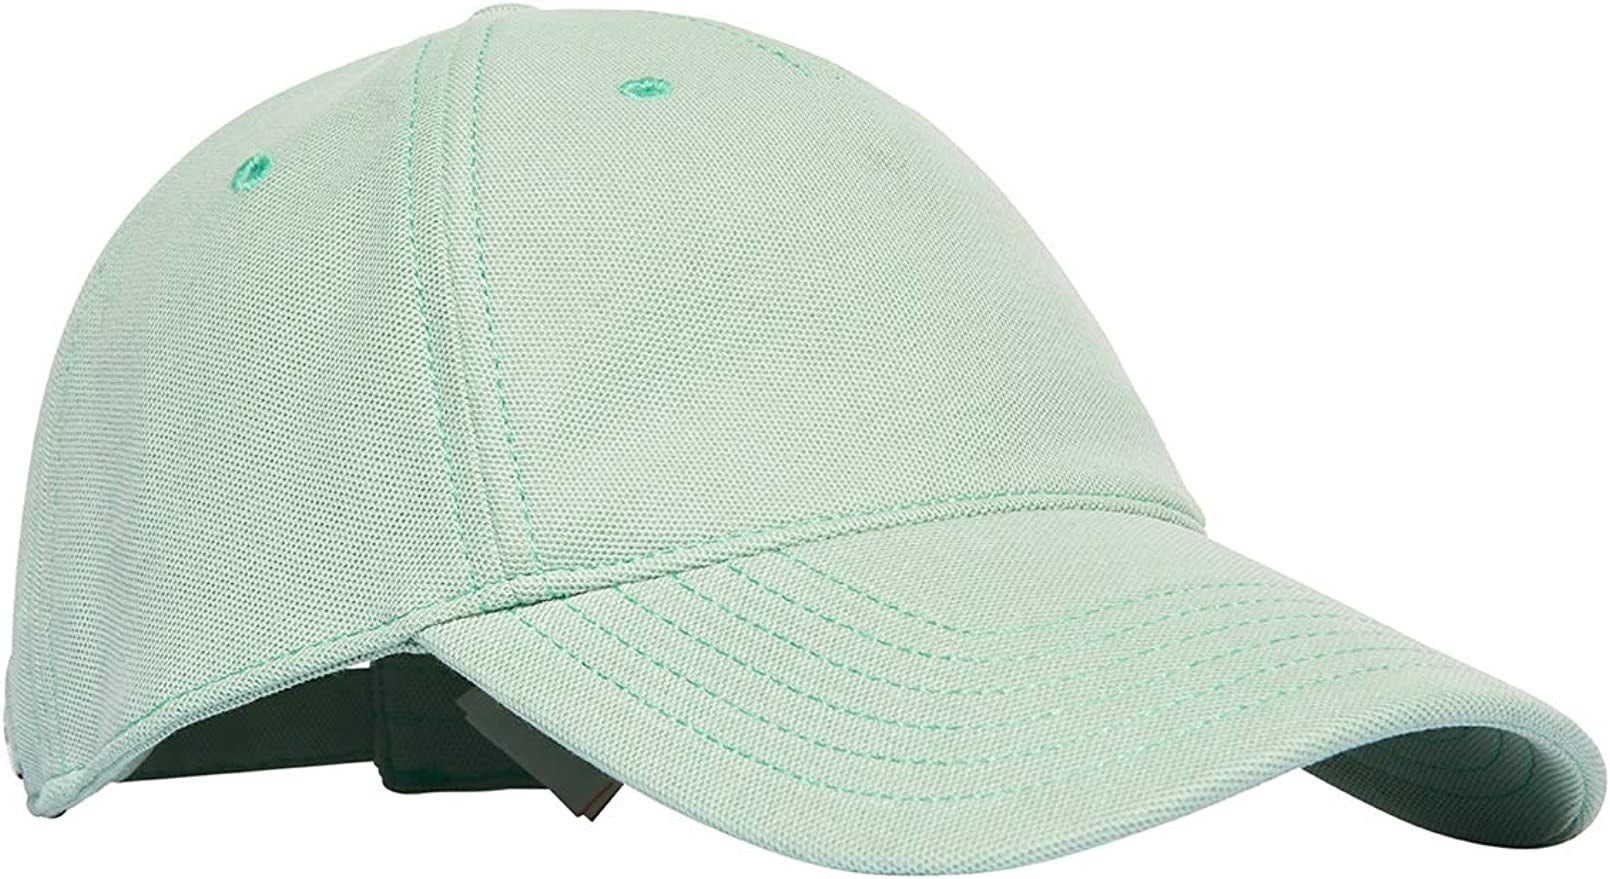 Superdry - Gorra de piqué, Color Menta Fresca: Amazon.es: Ropa y ...